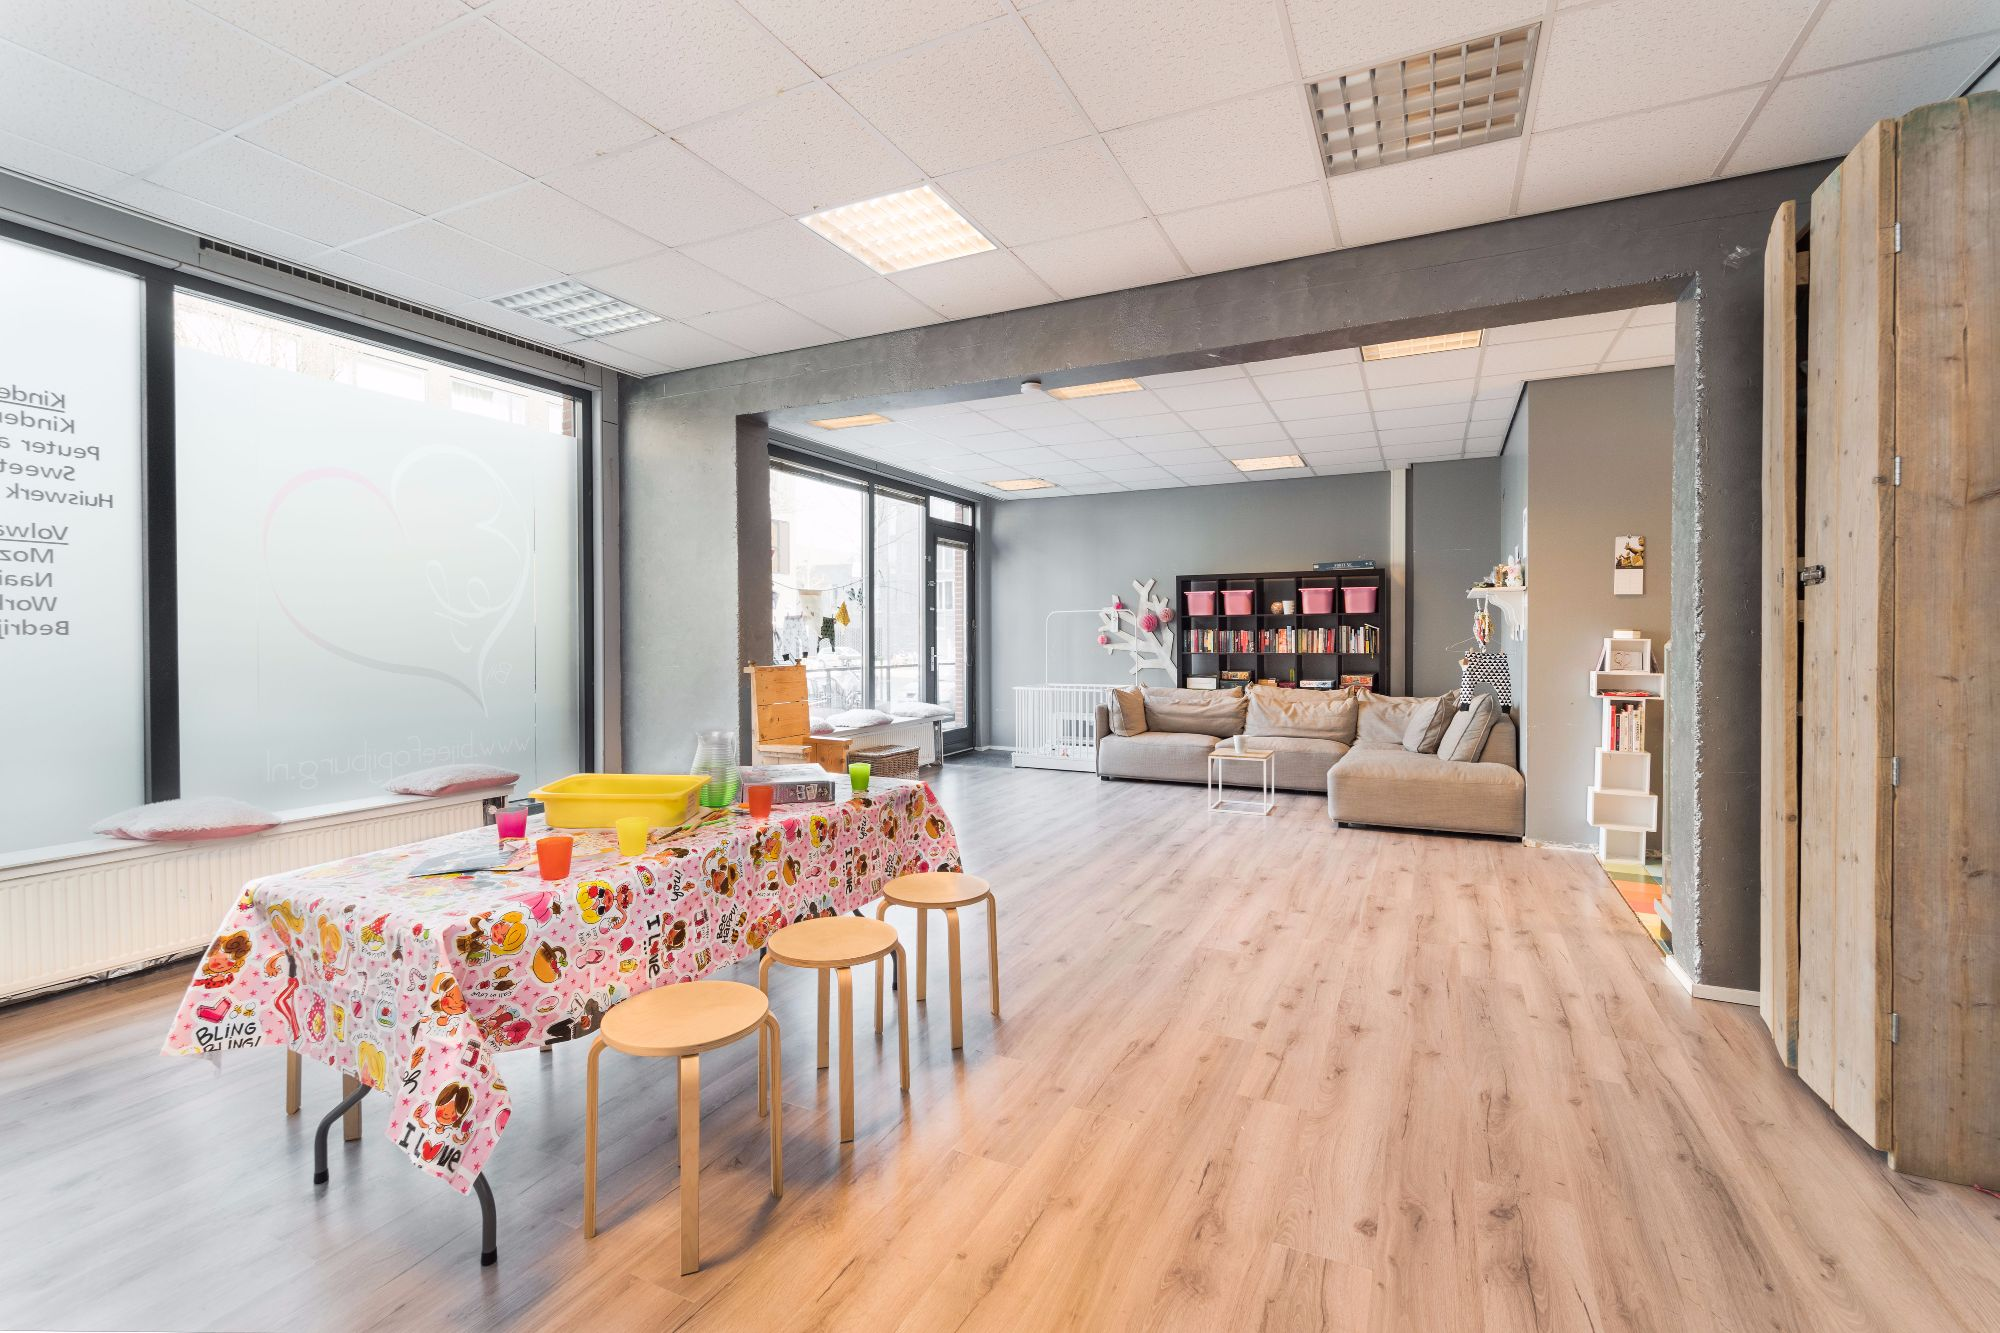 Working places for rent in Amsterdam childcare